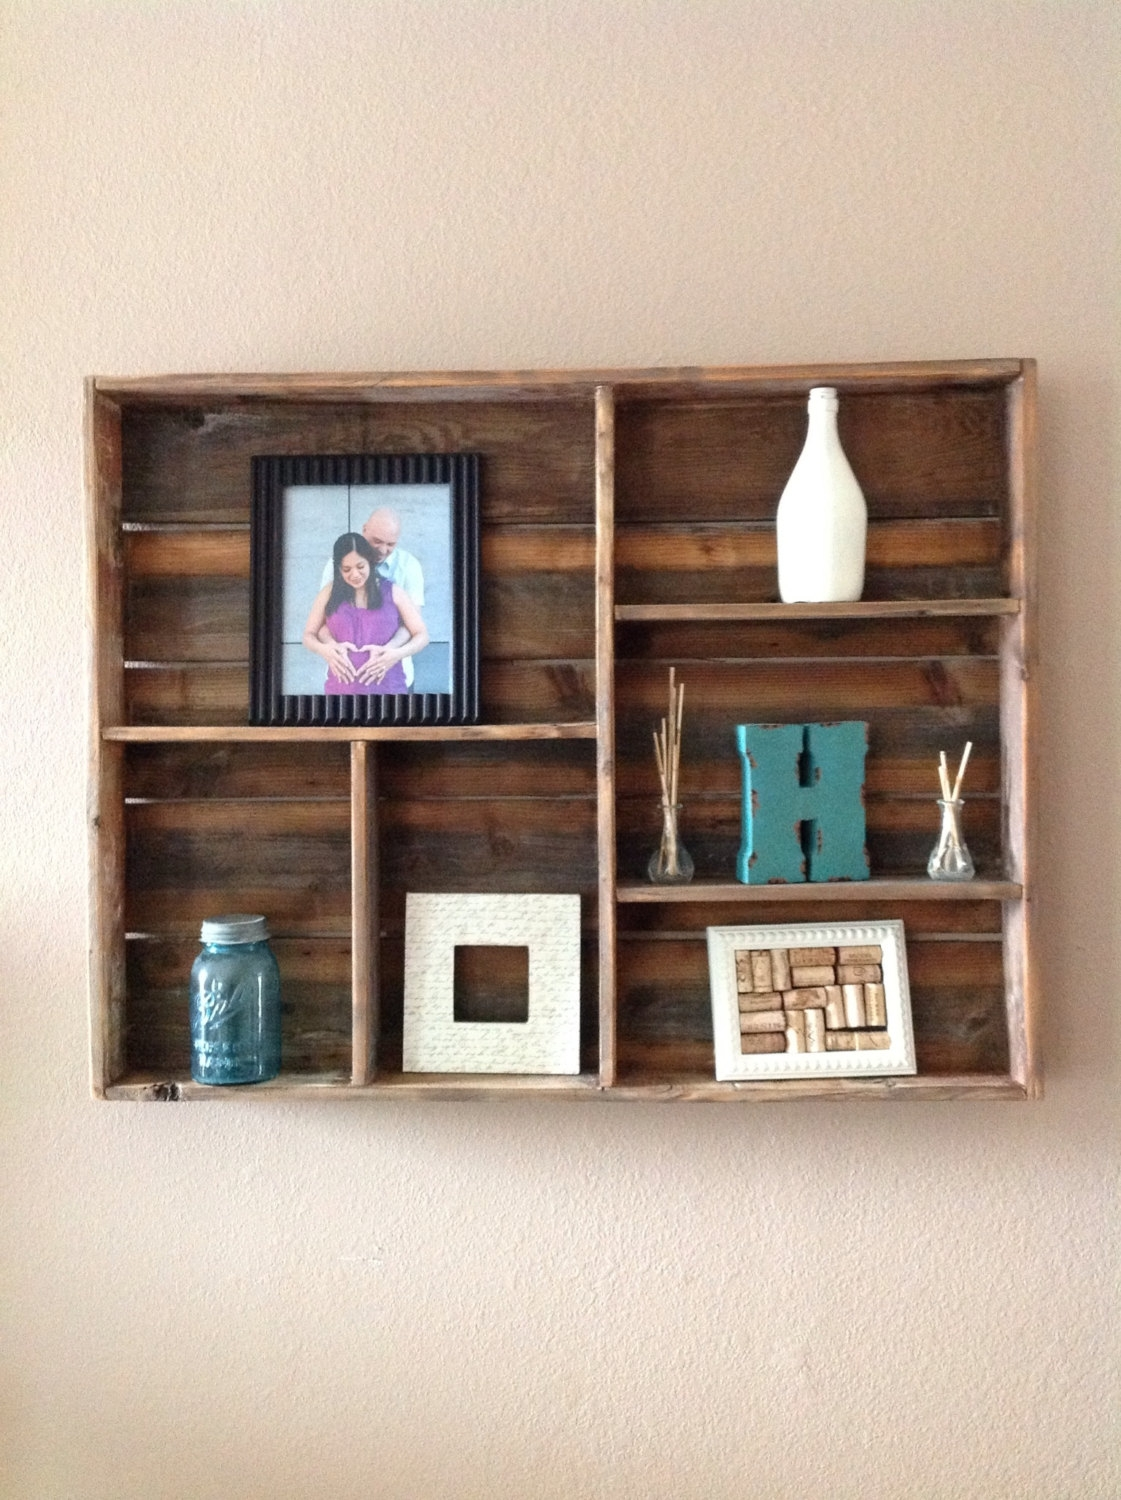 Popular Photo of Wooden Wall Shelves